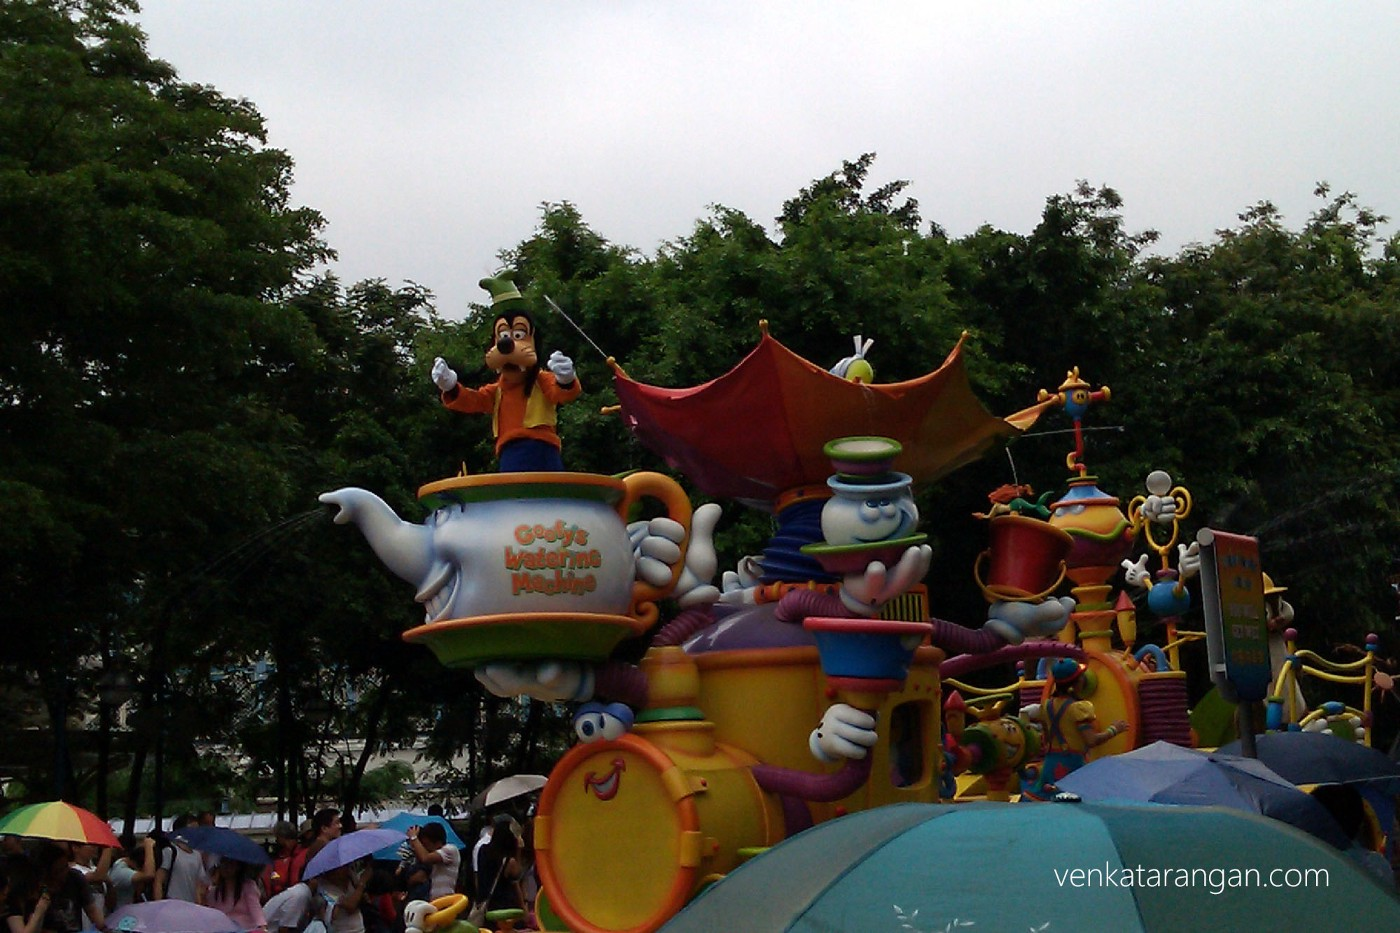 Evening Parade - Goofy's watering machine